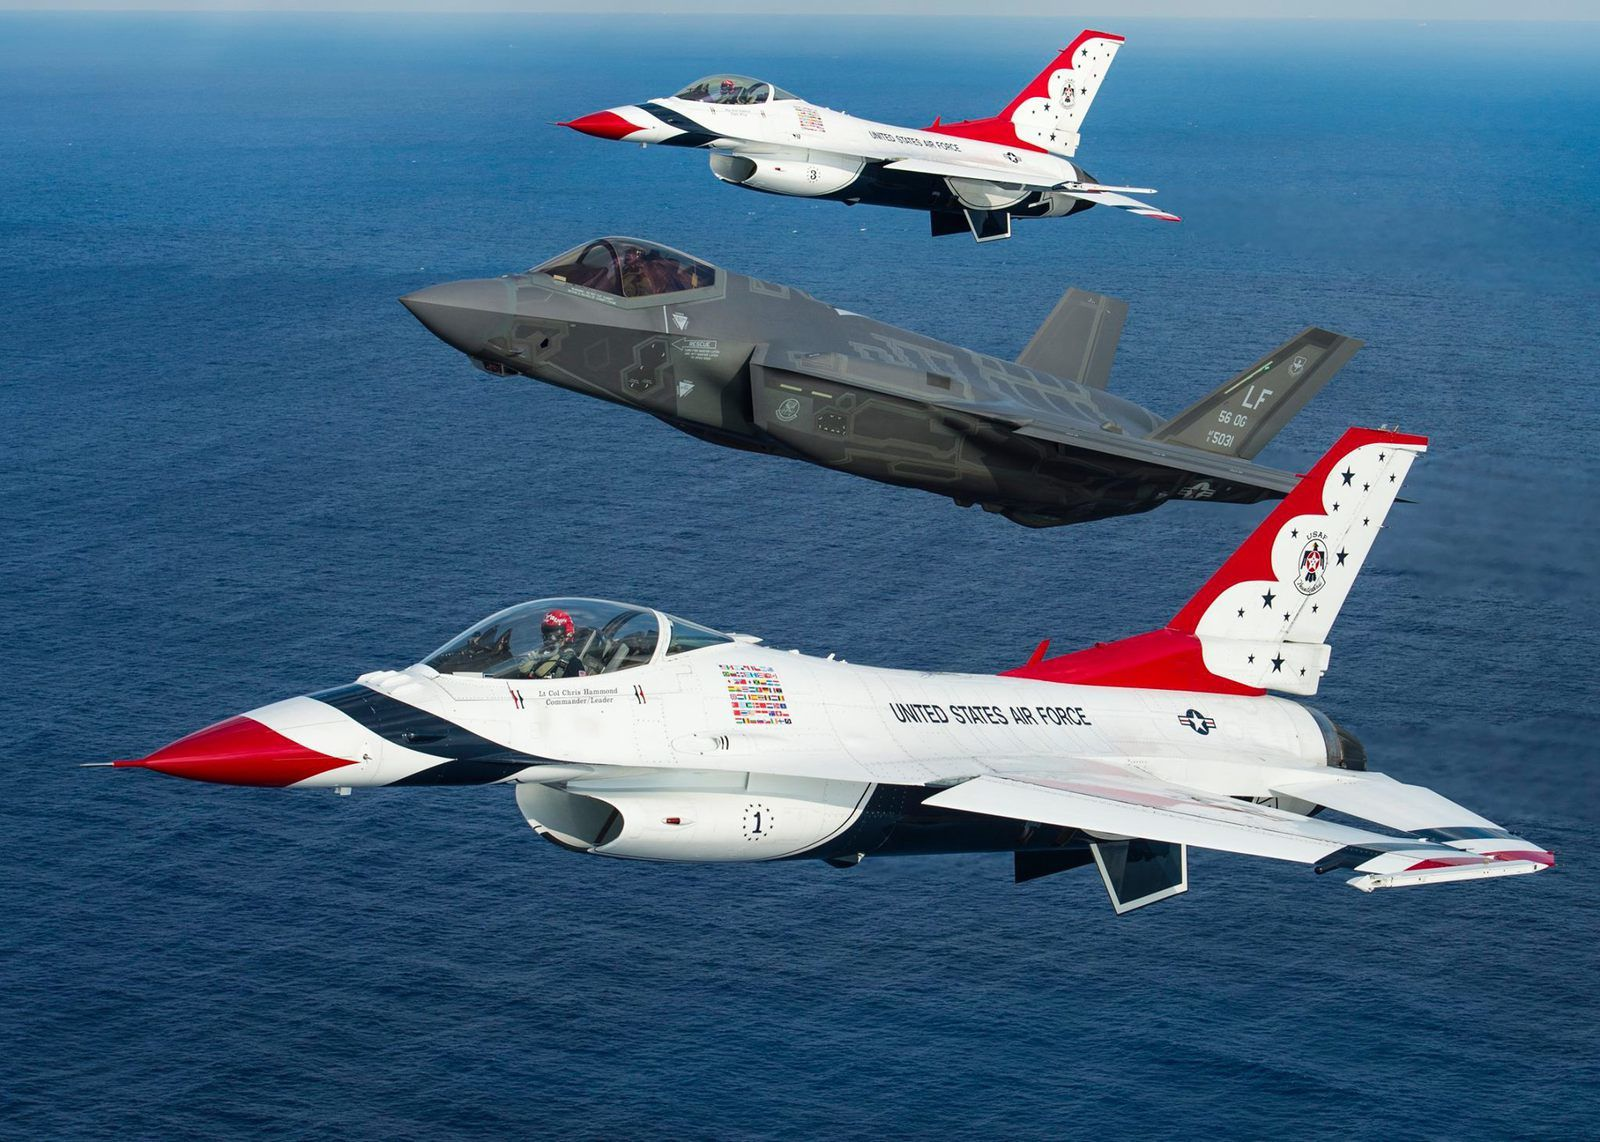 PHOTOS - Les F-16 Thunderbirds en vol avec un F-35A de l'US Air Force